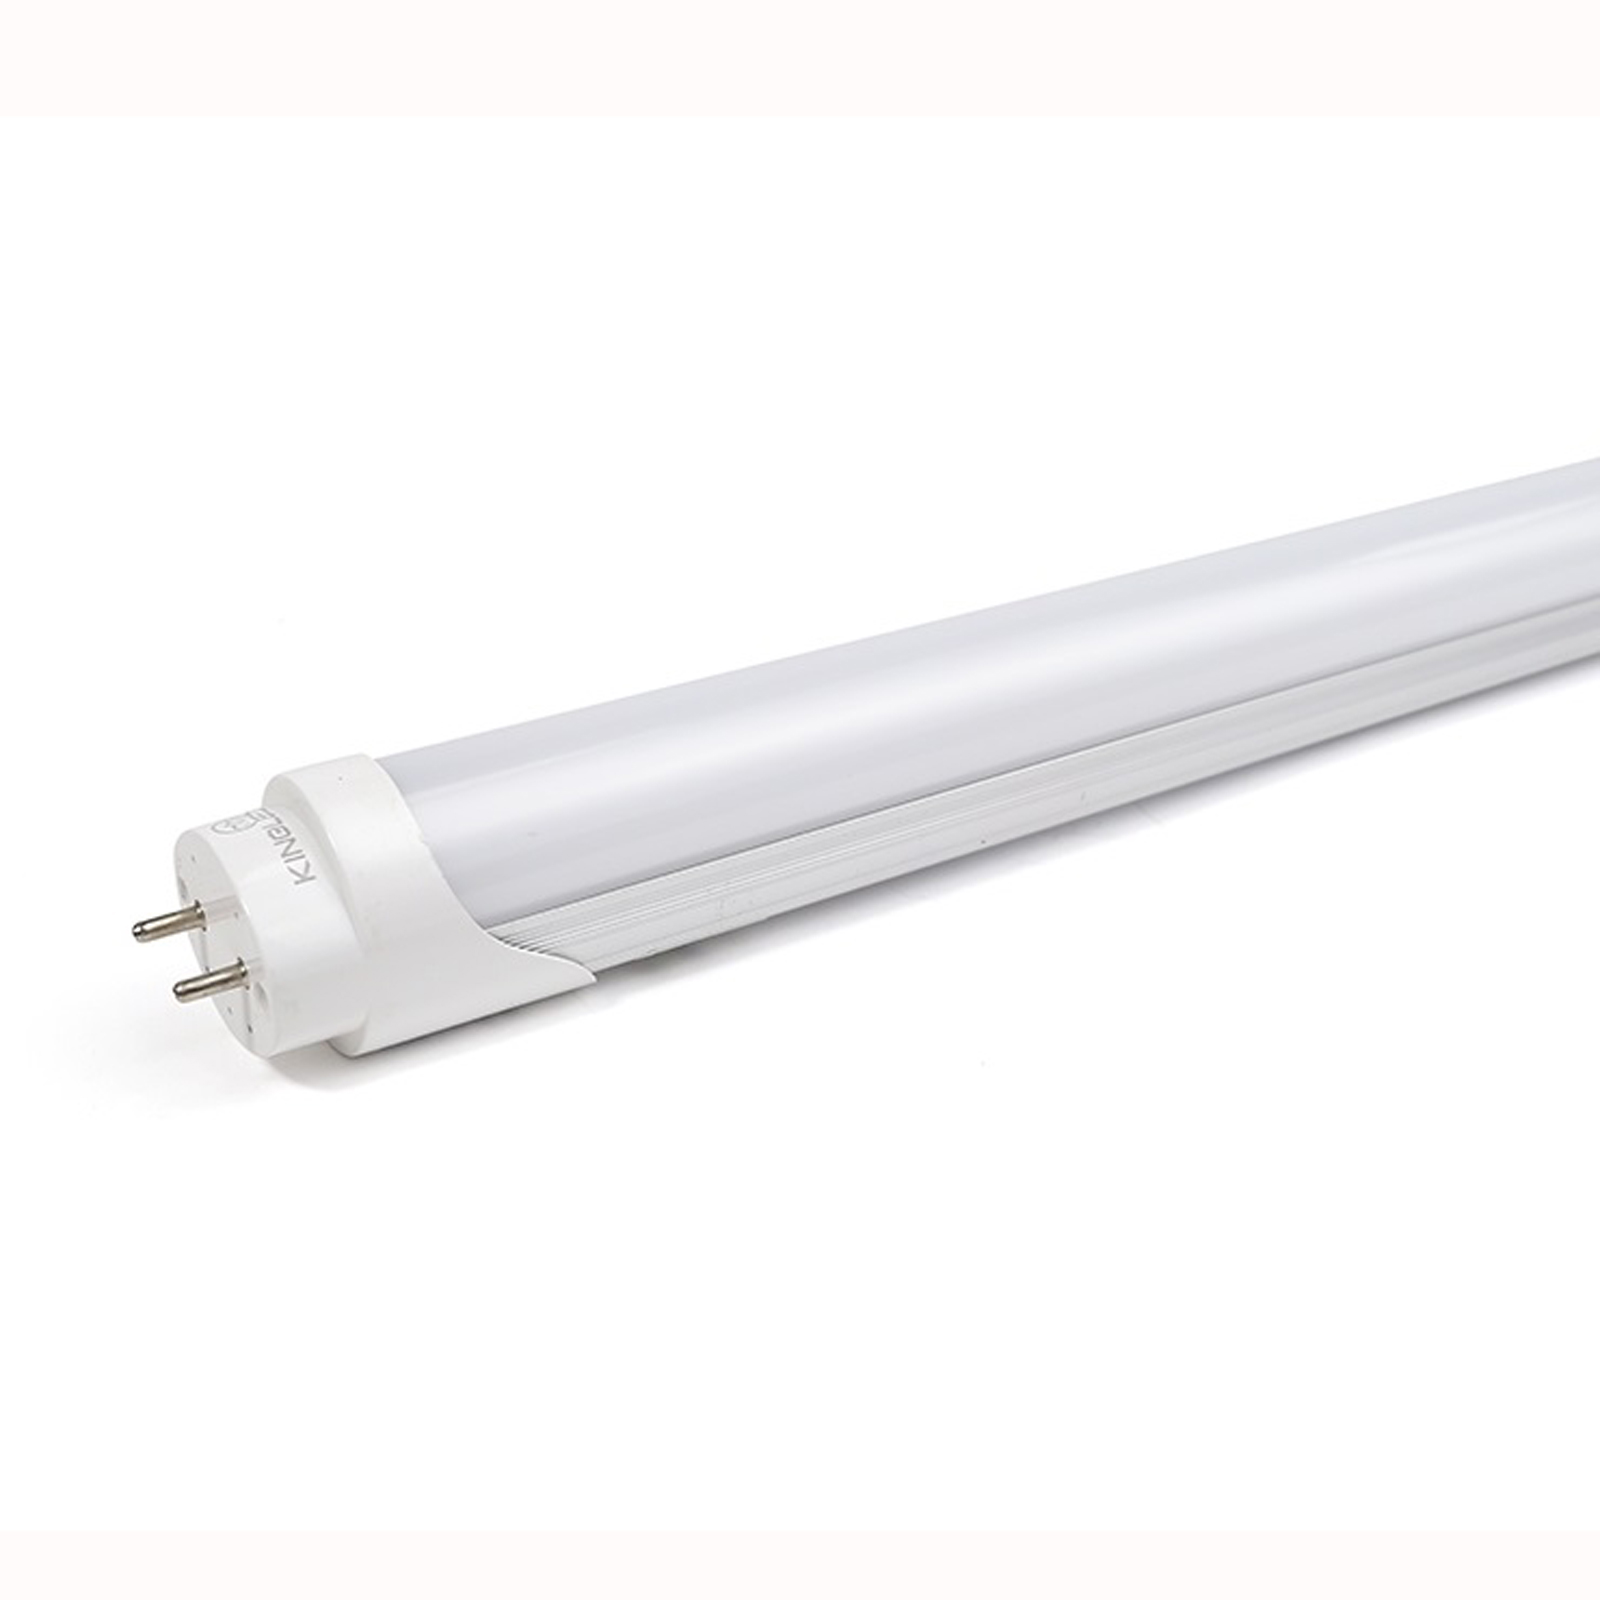 Đèn Tuýt T8 Led 22W 1.2M T8-22-120-T/TT/V Kingled